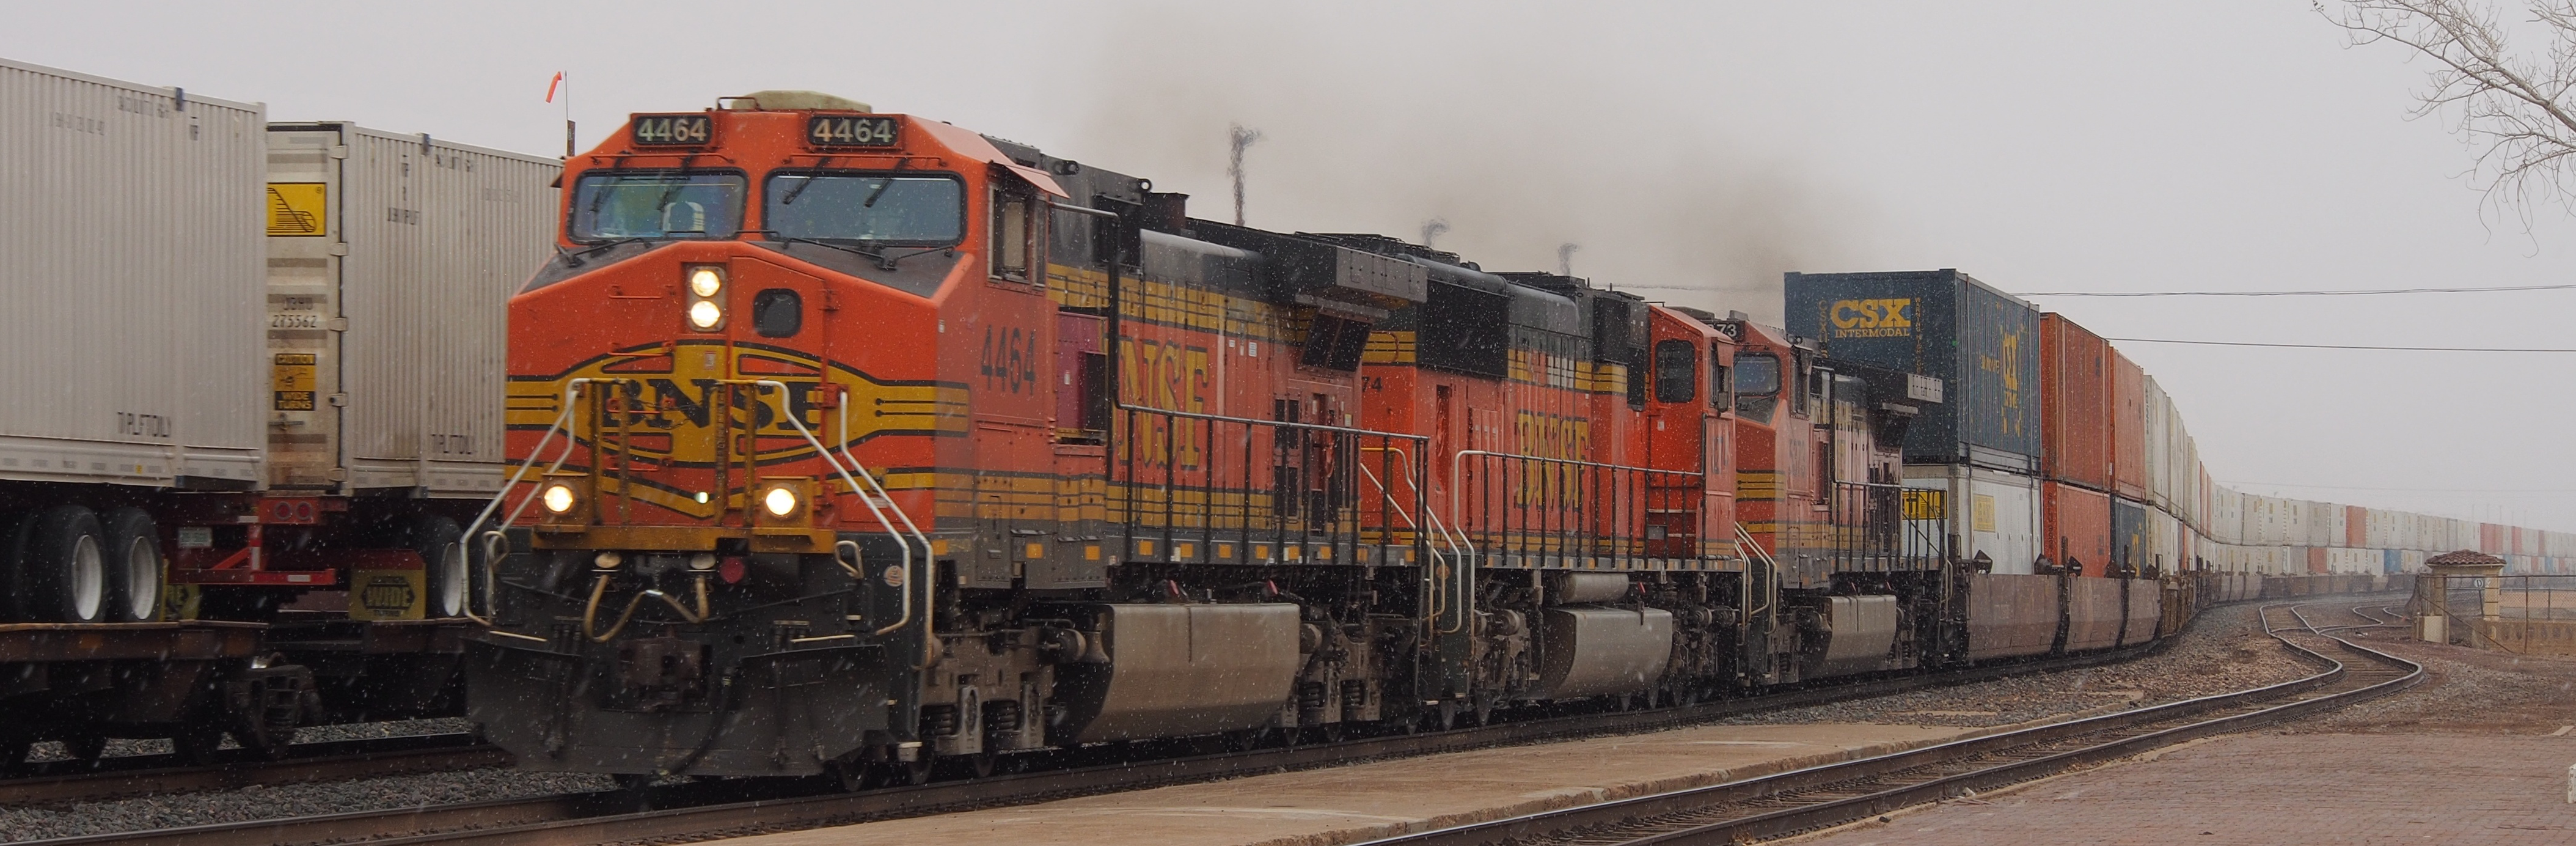 PNG Image Of Train - 48351